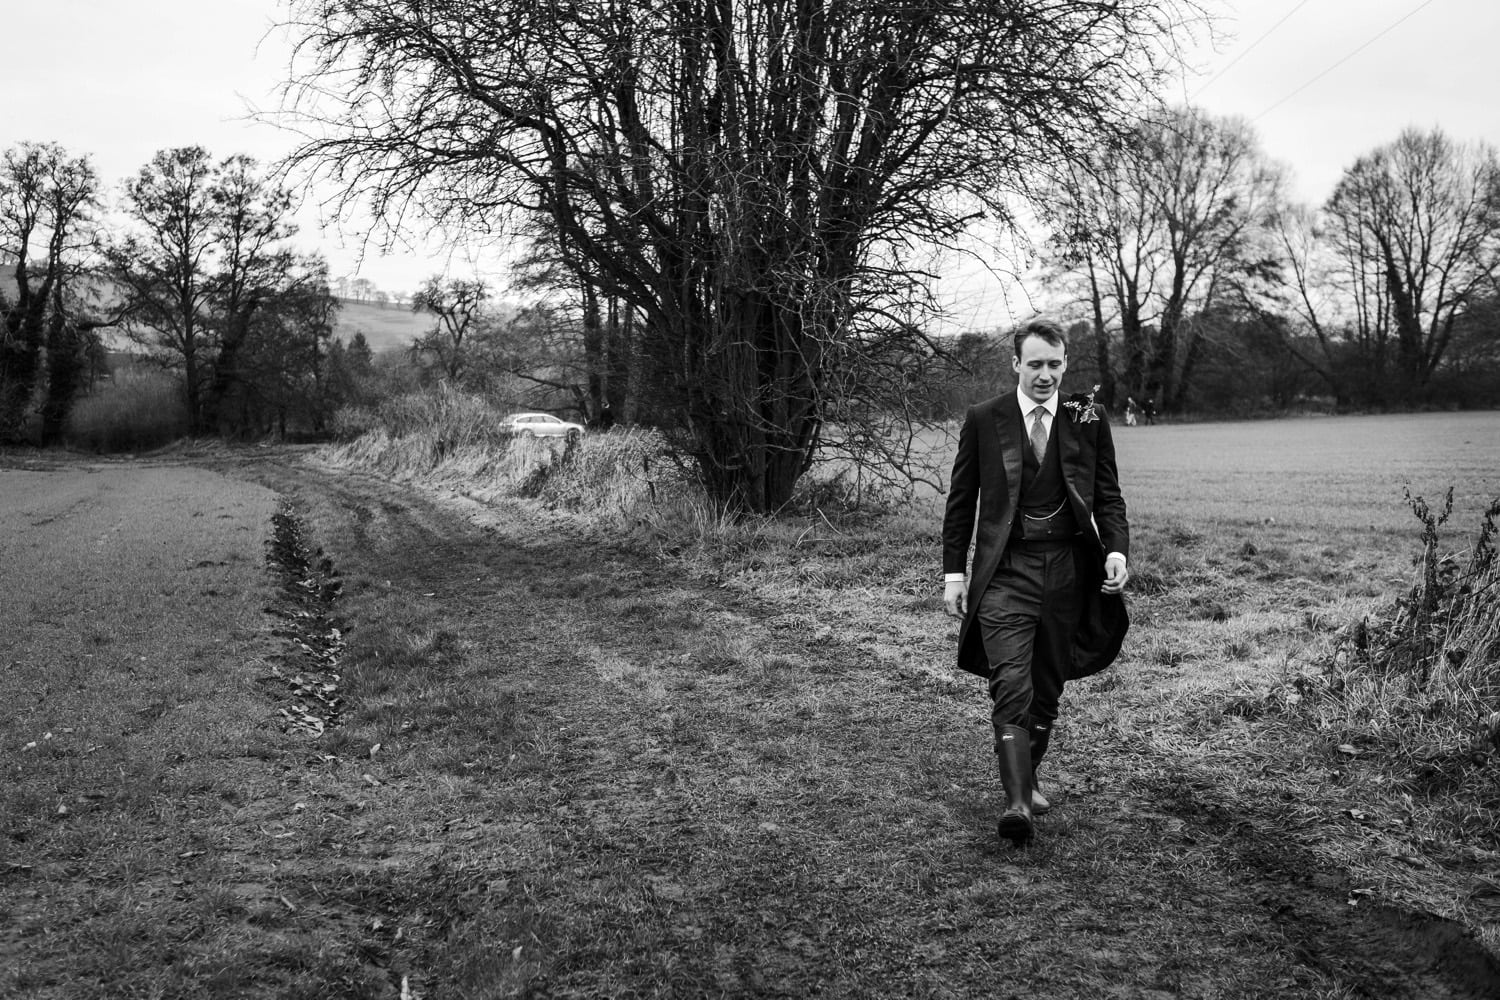 Walking through field to church wedding in Monmouthshire